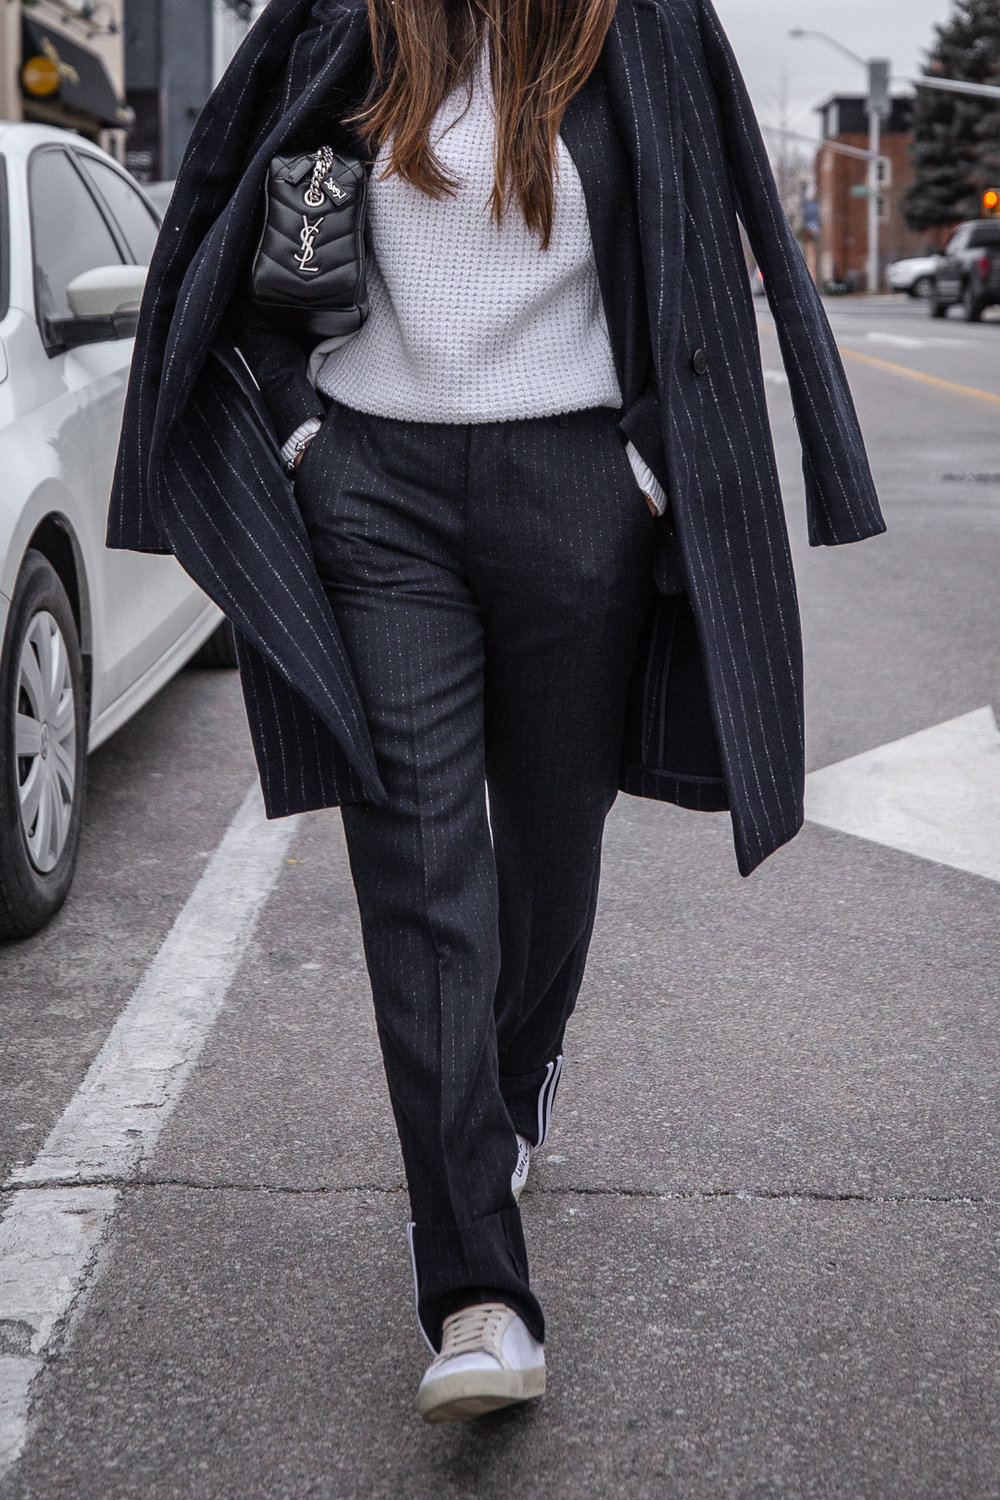 Nathalie Martin - Zadig & Voltaire pinstripe suit, Acne Studios white knitted sweater, Neon green beanie, Saint Laurent LouLou bowling bag and white canvas sneakers, Aritzia Stedman coat, street style, woahstyle.com_6000.jpg